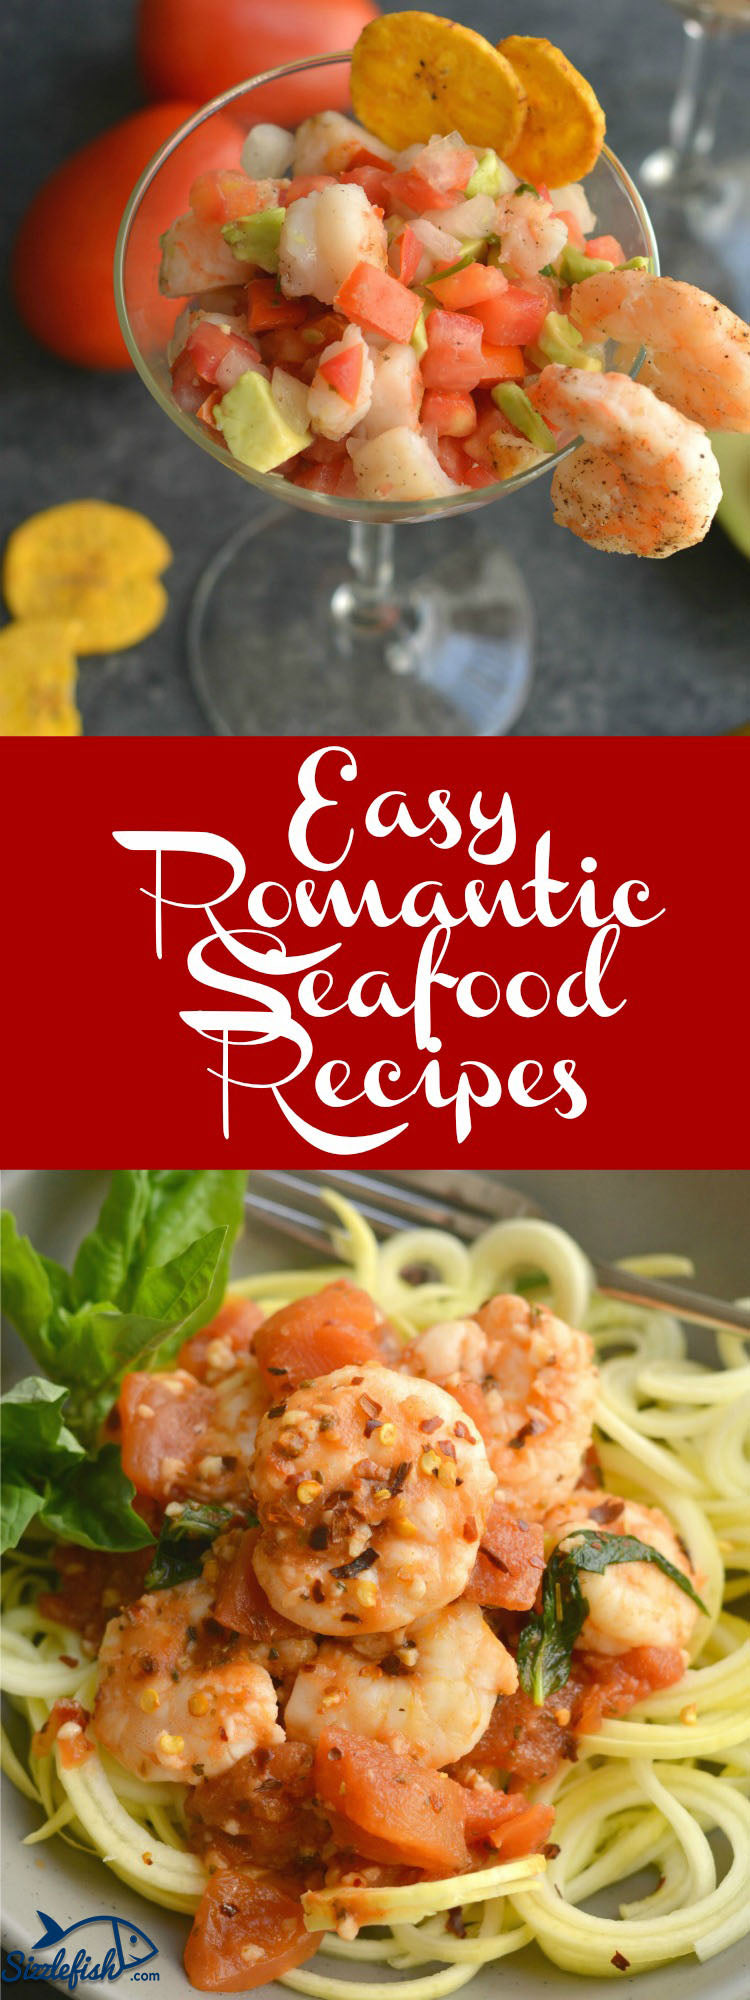 Easy Romantic Seafood Recipes